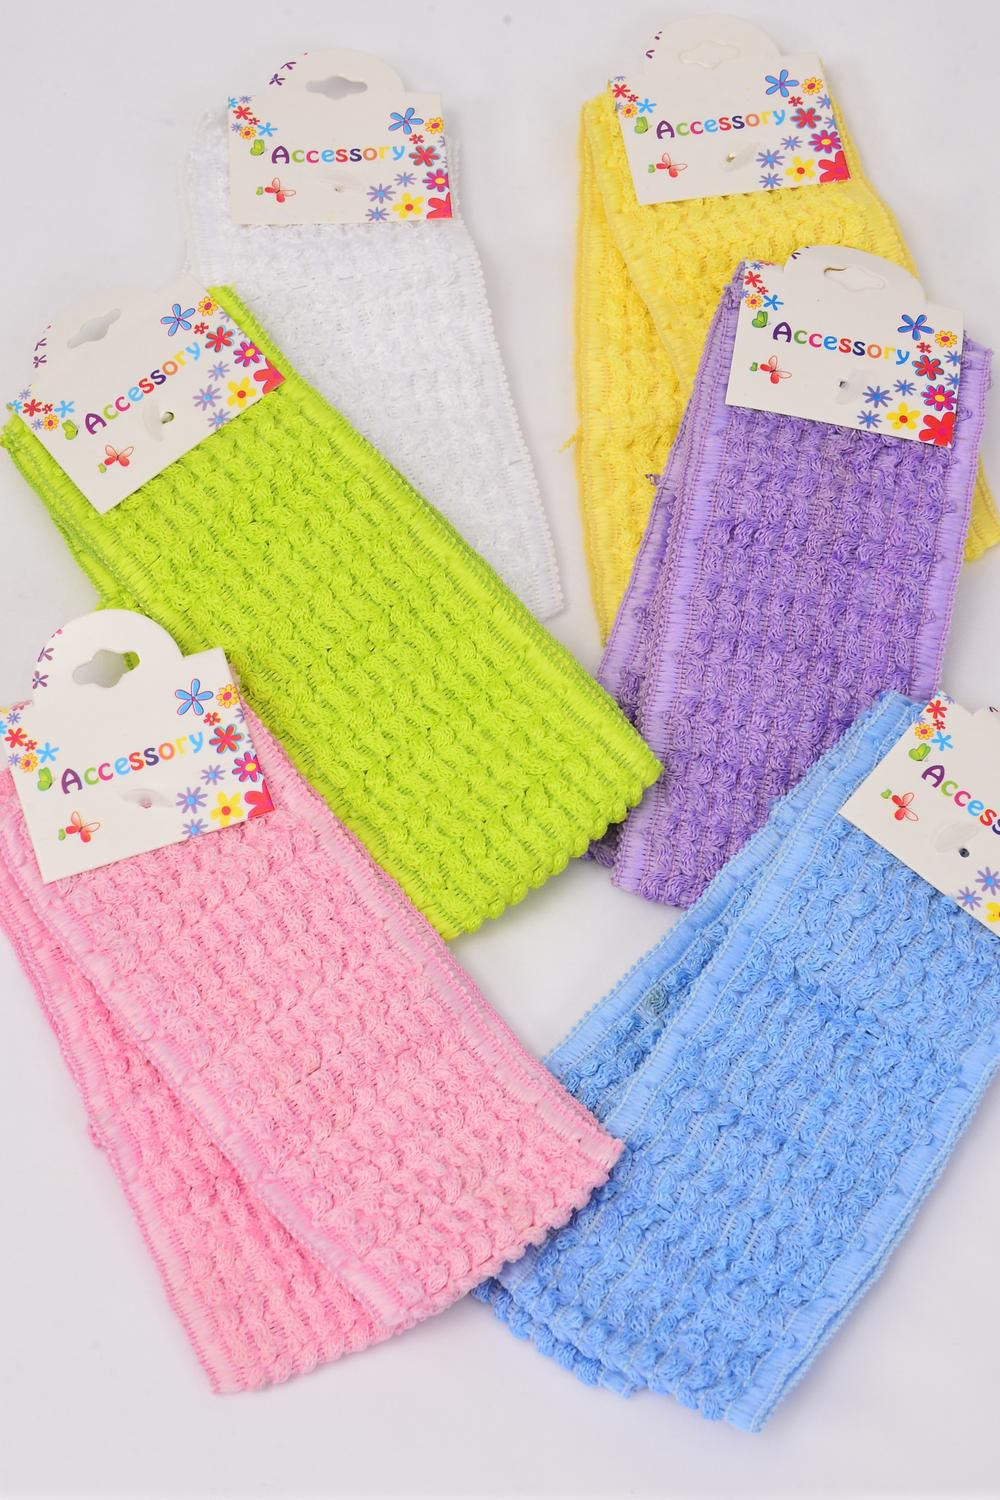 "Headband Crochet 2.25 Inch Wide 24 pcs Pastel Color Mix/DZ **Pastel** Stretch** Size-2.25"" Wide,2 of each color Asst,Hang Tag & OPP Bag & UPC Code"